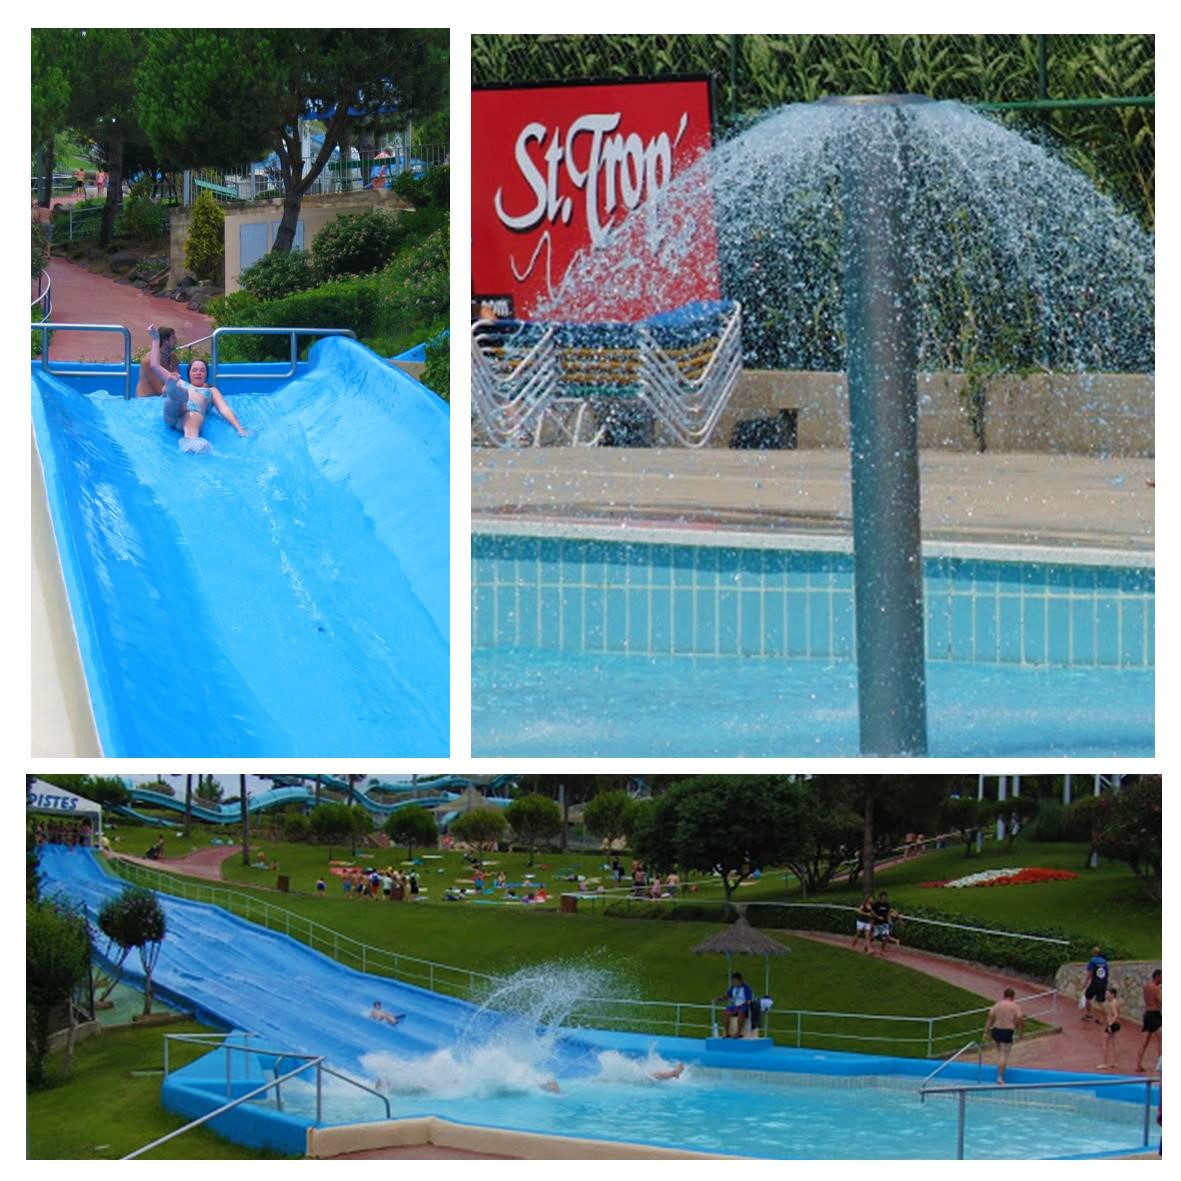 Waterworld i Lloret de Mar